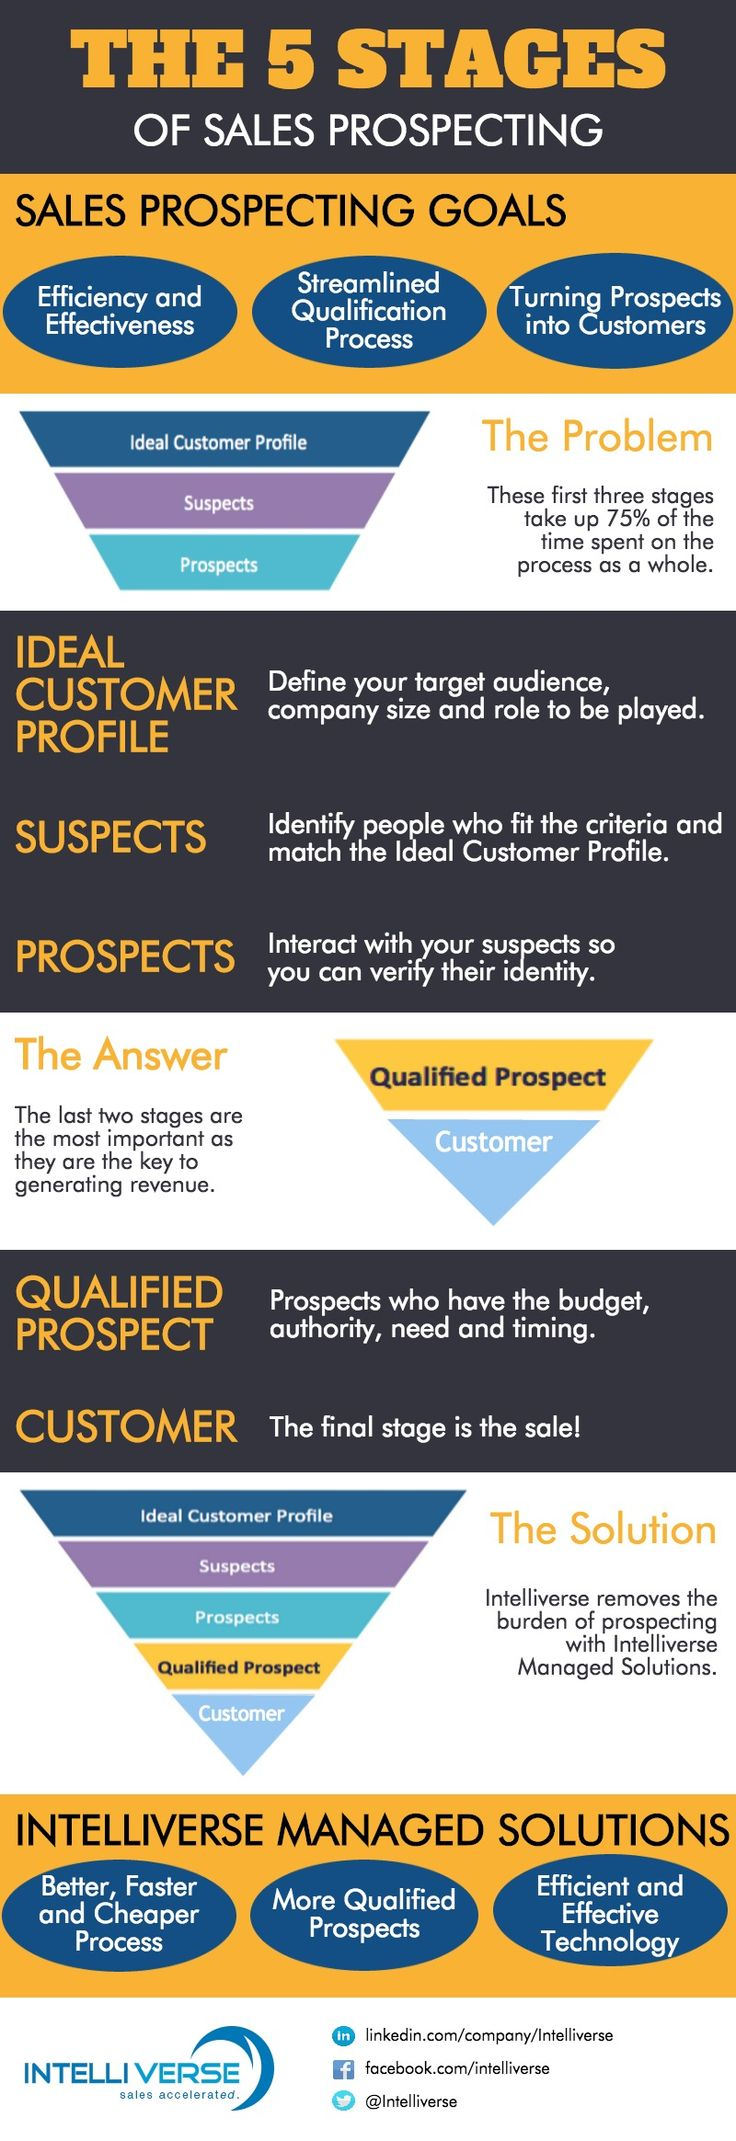 The 5 Stages of Sales Prospecting